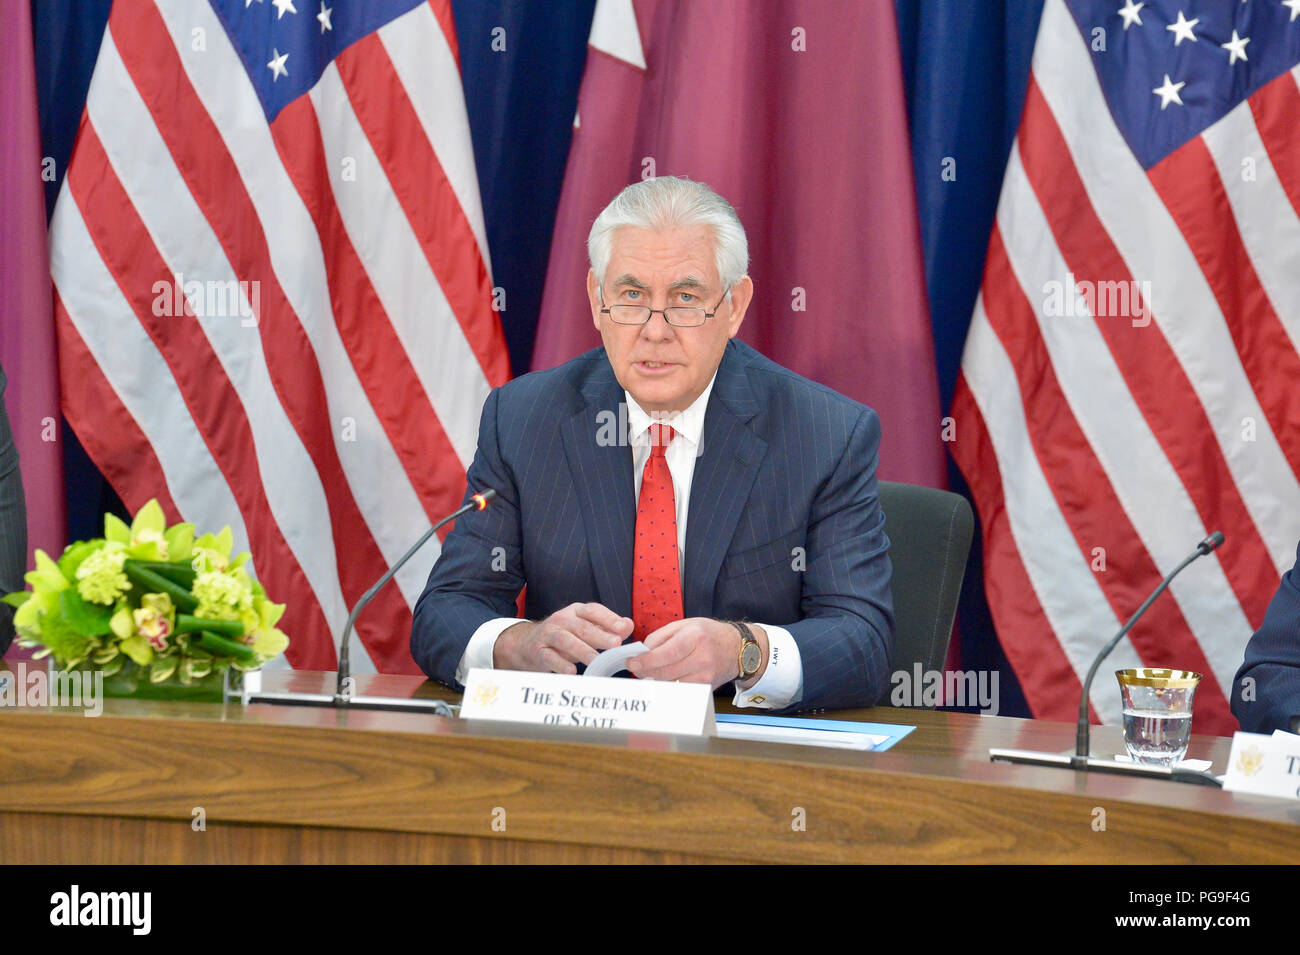 U.S. Secretary of State Rex Tillerson delivers remarks at the High-Level Opening Session of the Inaugural U.S.-Qatar Strategic Dialogue at the U.S. Department of State in Washington, D.C. on January 30, 2018. - Stock Image